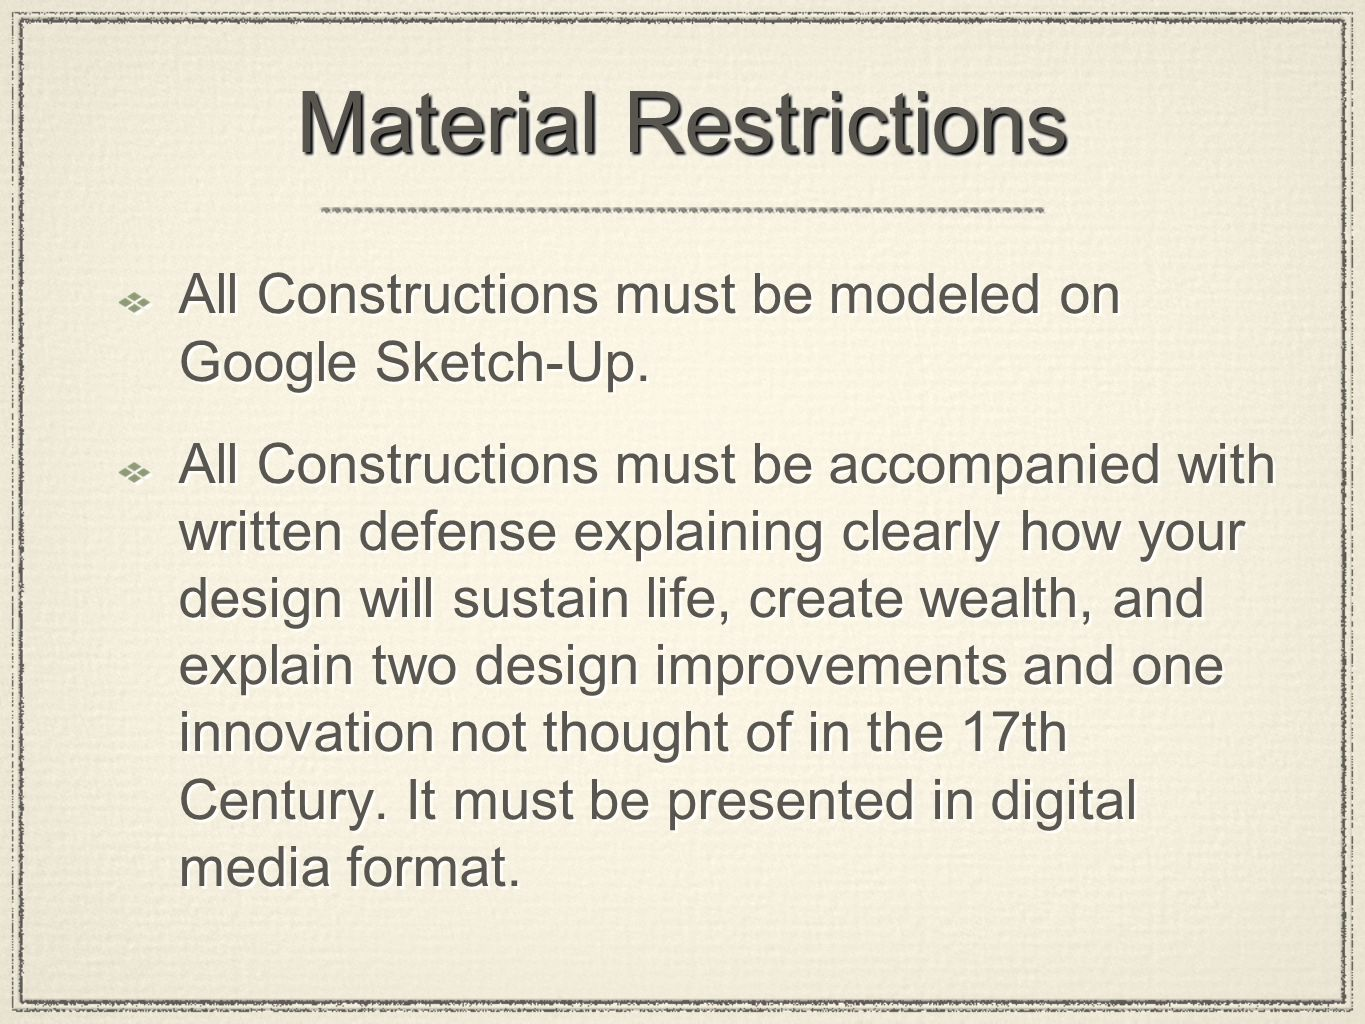 Material Restrictions